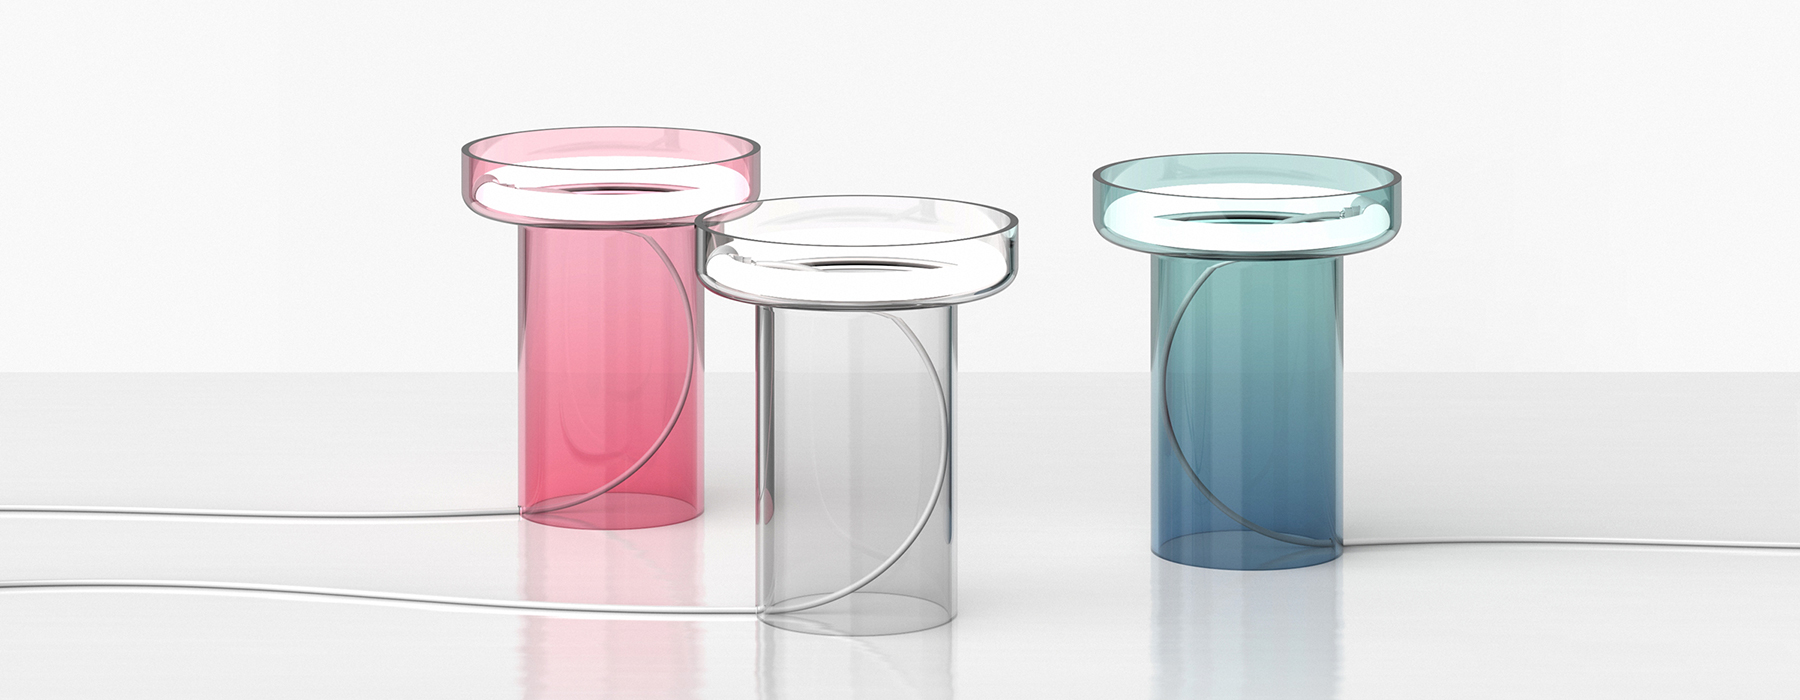 HALO table lamp by Quentin Coster